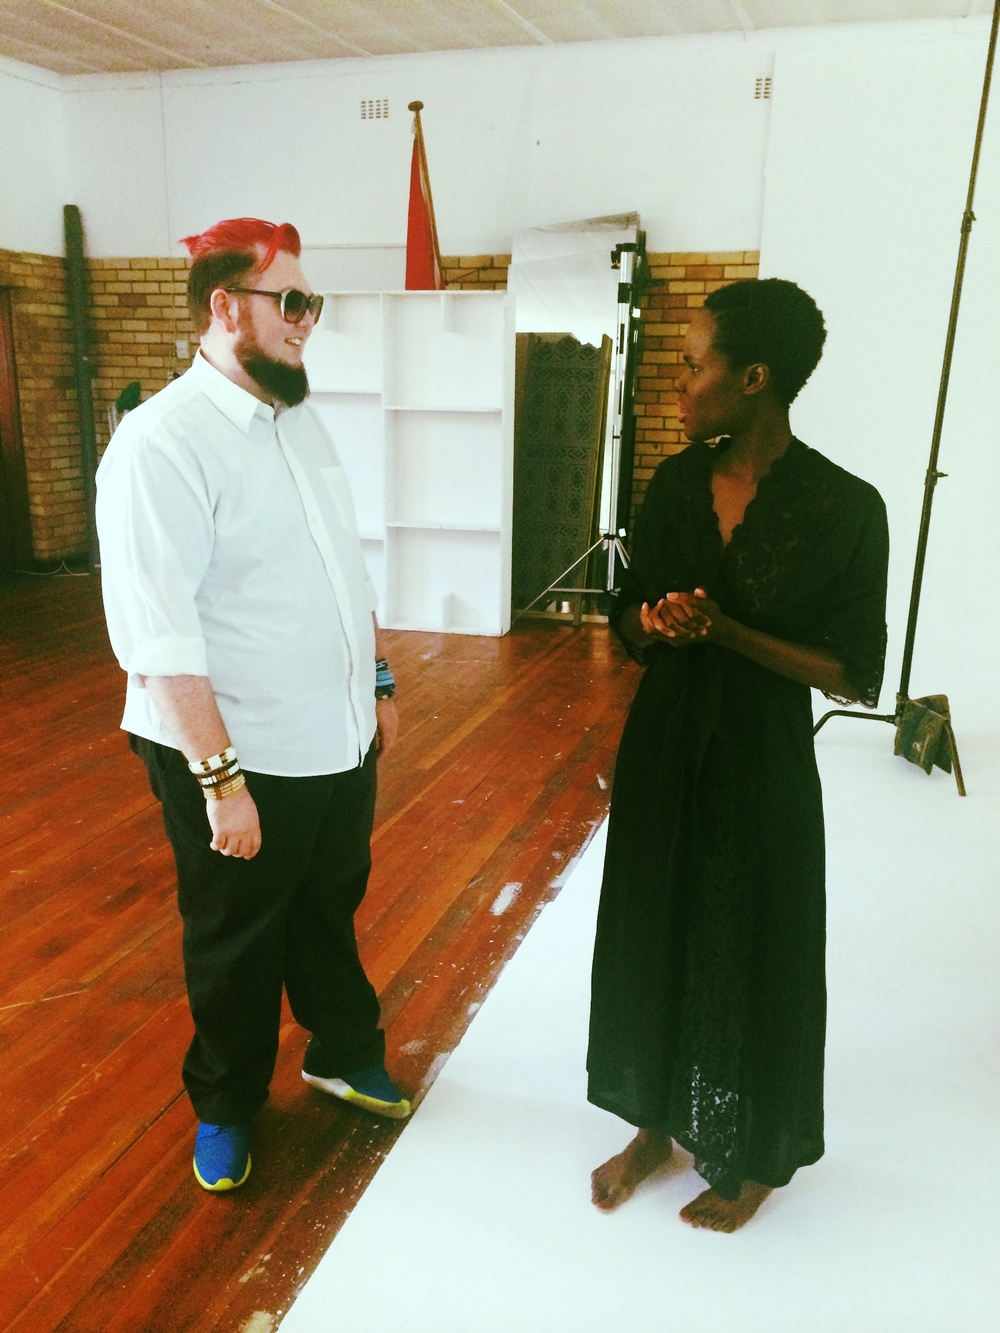 Creative Director, AFI Prive, Kyle Boshoff and our beautiful model discussing ideas.